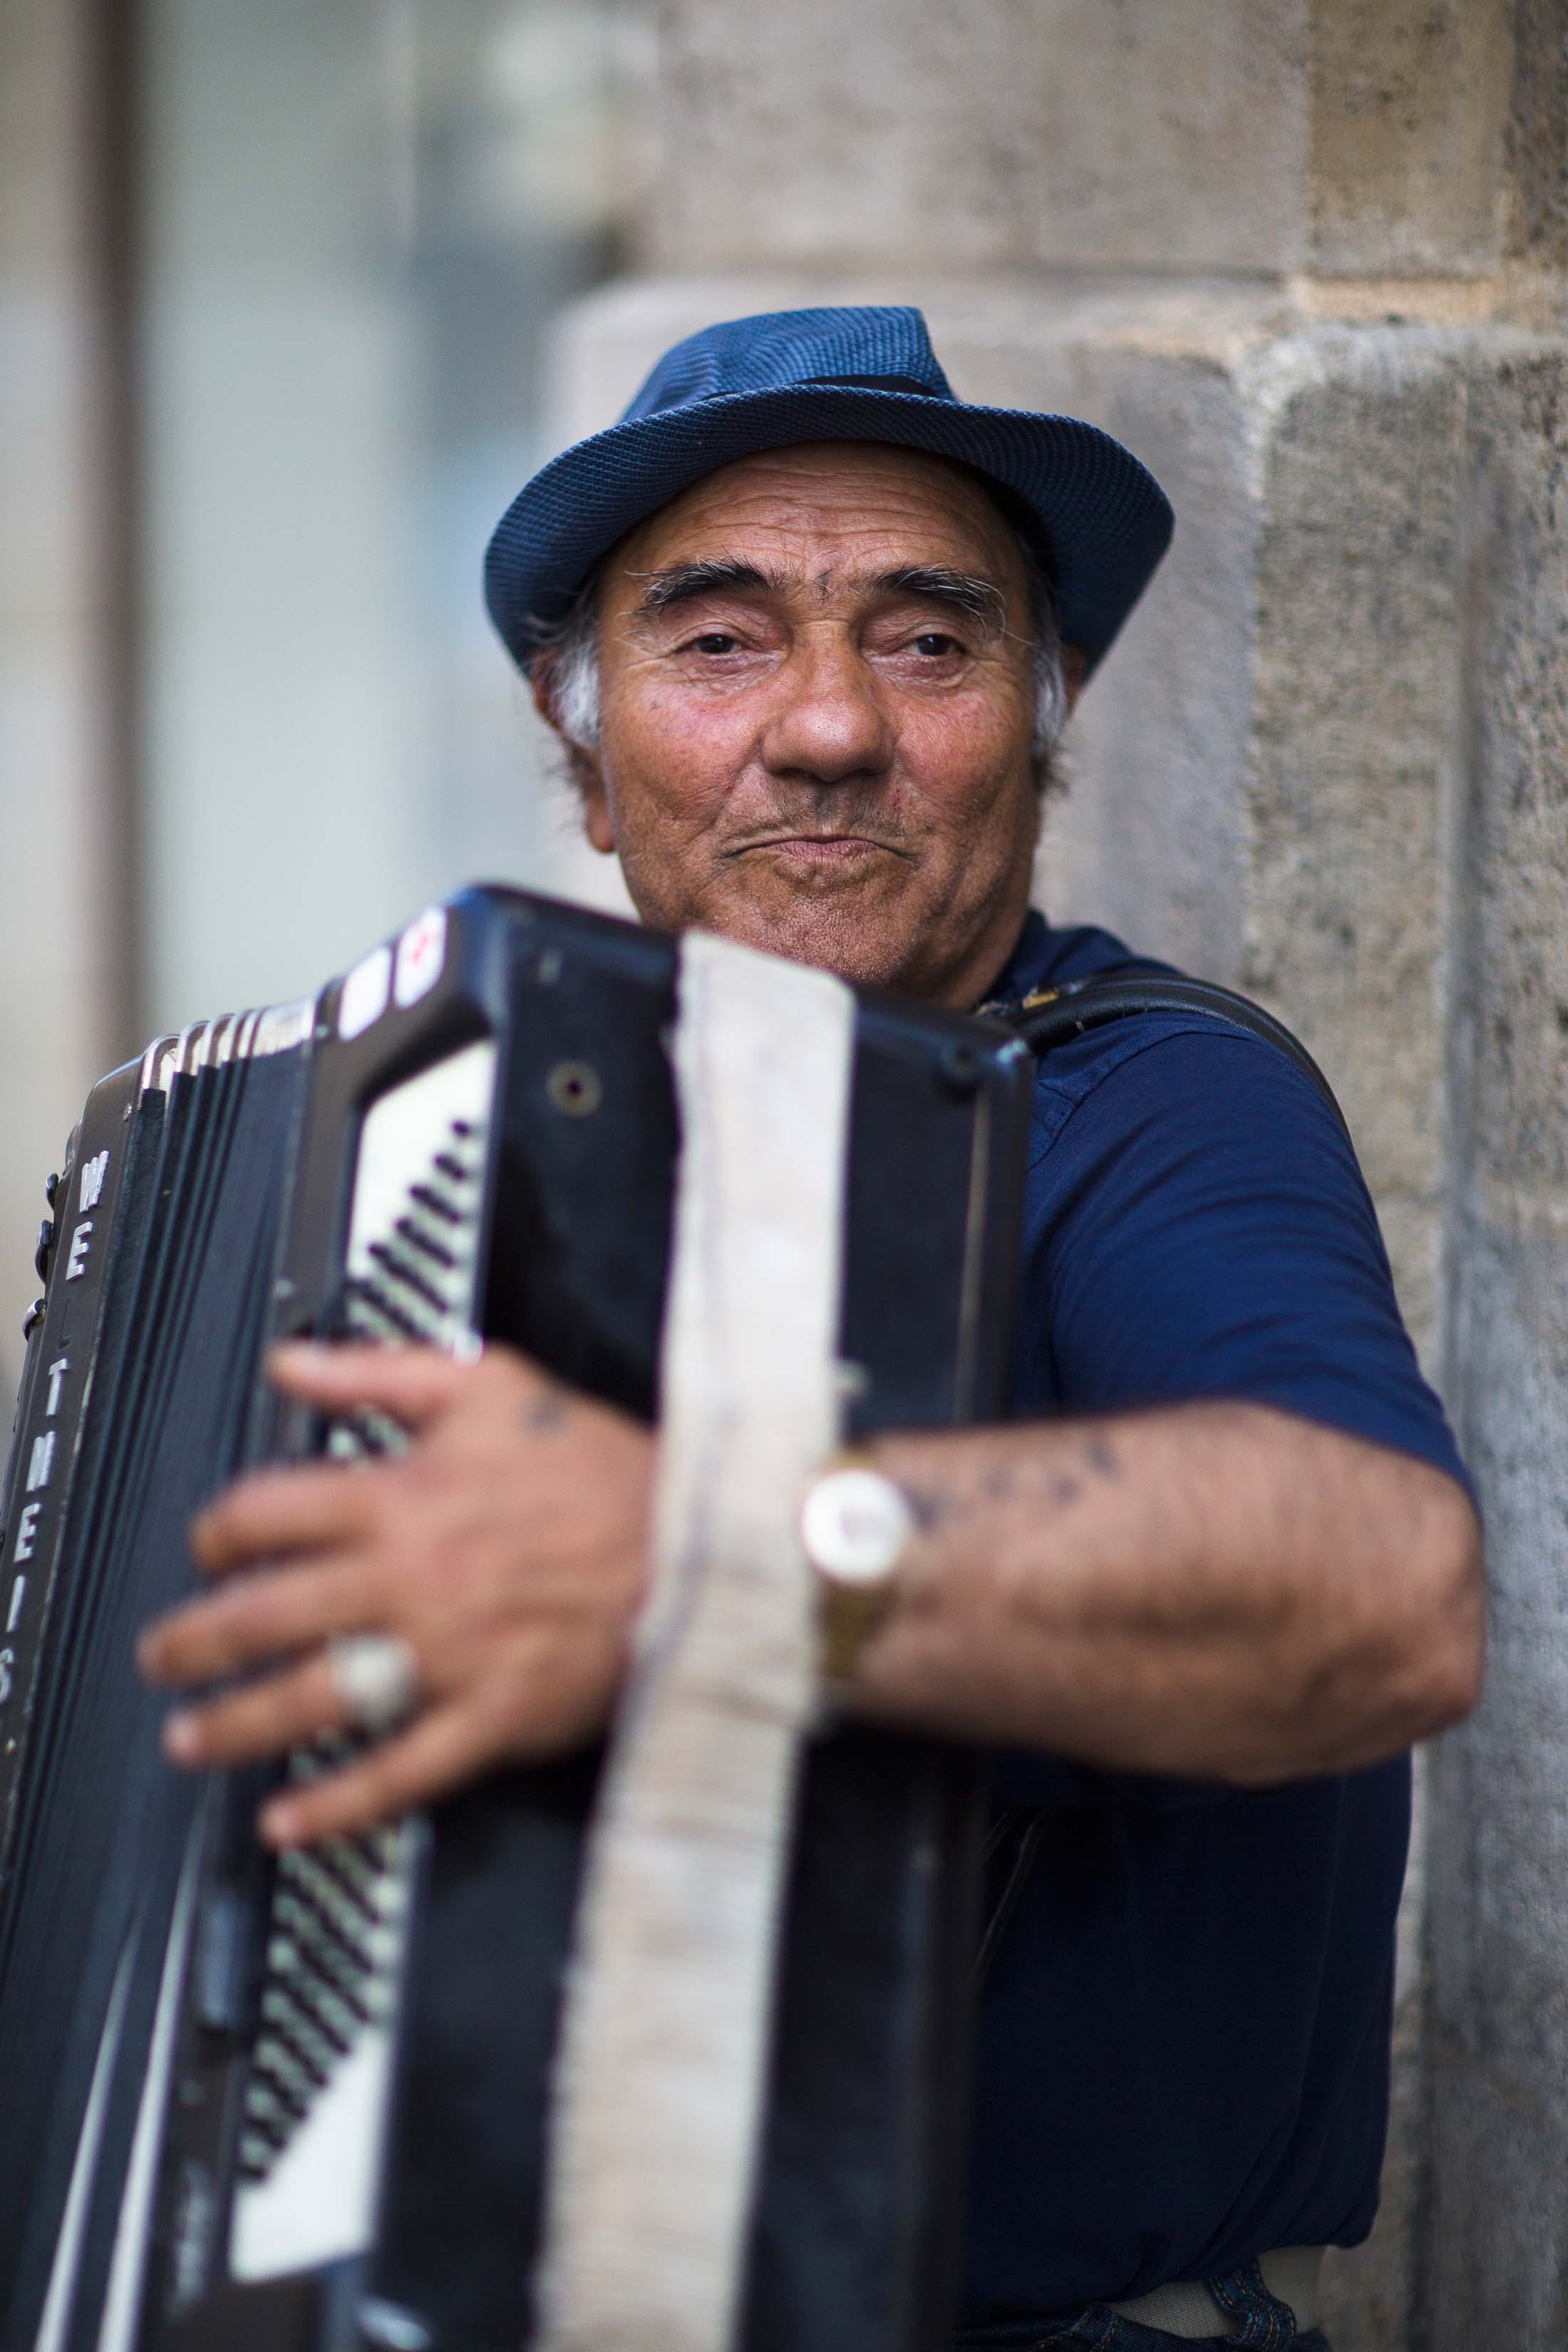 Accordion musician in Bordeaux, France